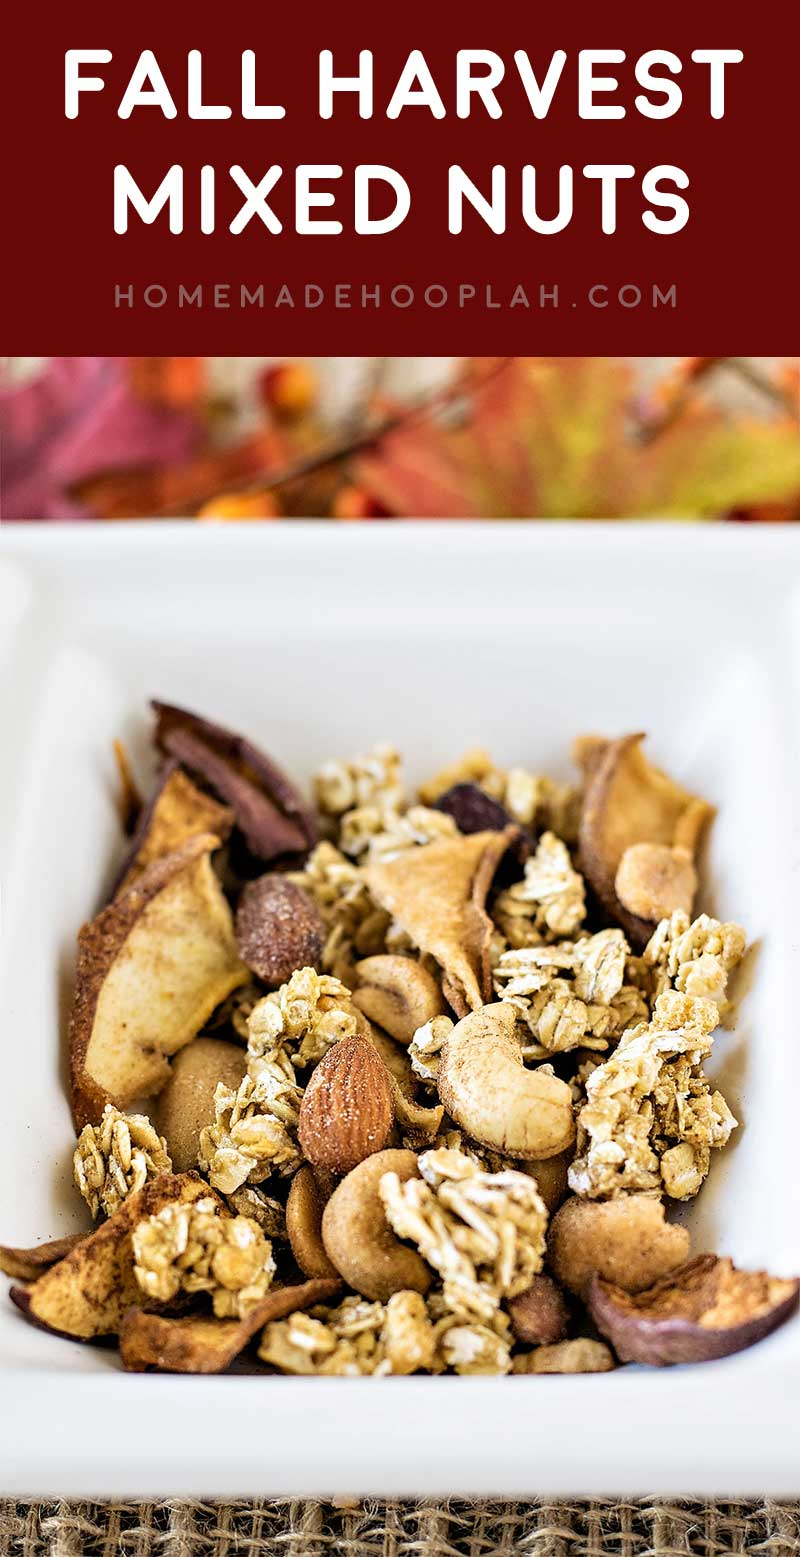 Fall Harvest Mixed Nuts! A (perfectly simple!) holiday snack for gifting or entertaining guests: dried fall fruits, granola, and Planters Mixed Nuts. #PlantersHoliday #CleverGirls AD | HomemadeHooplah.com